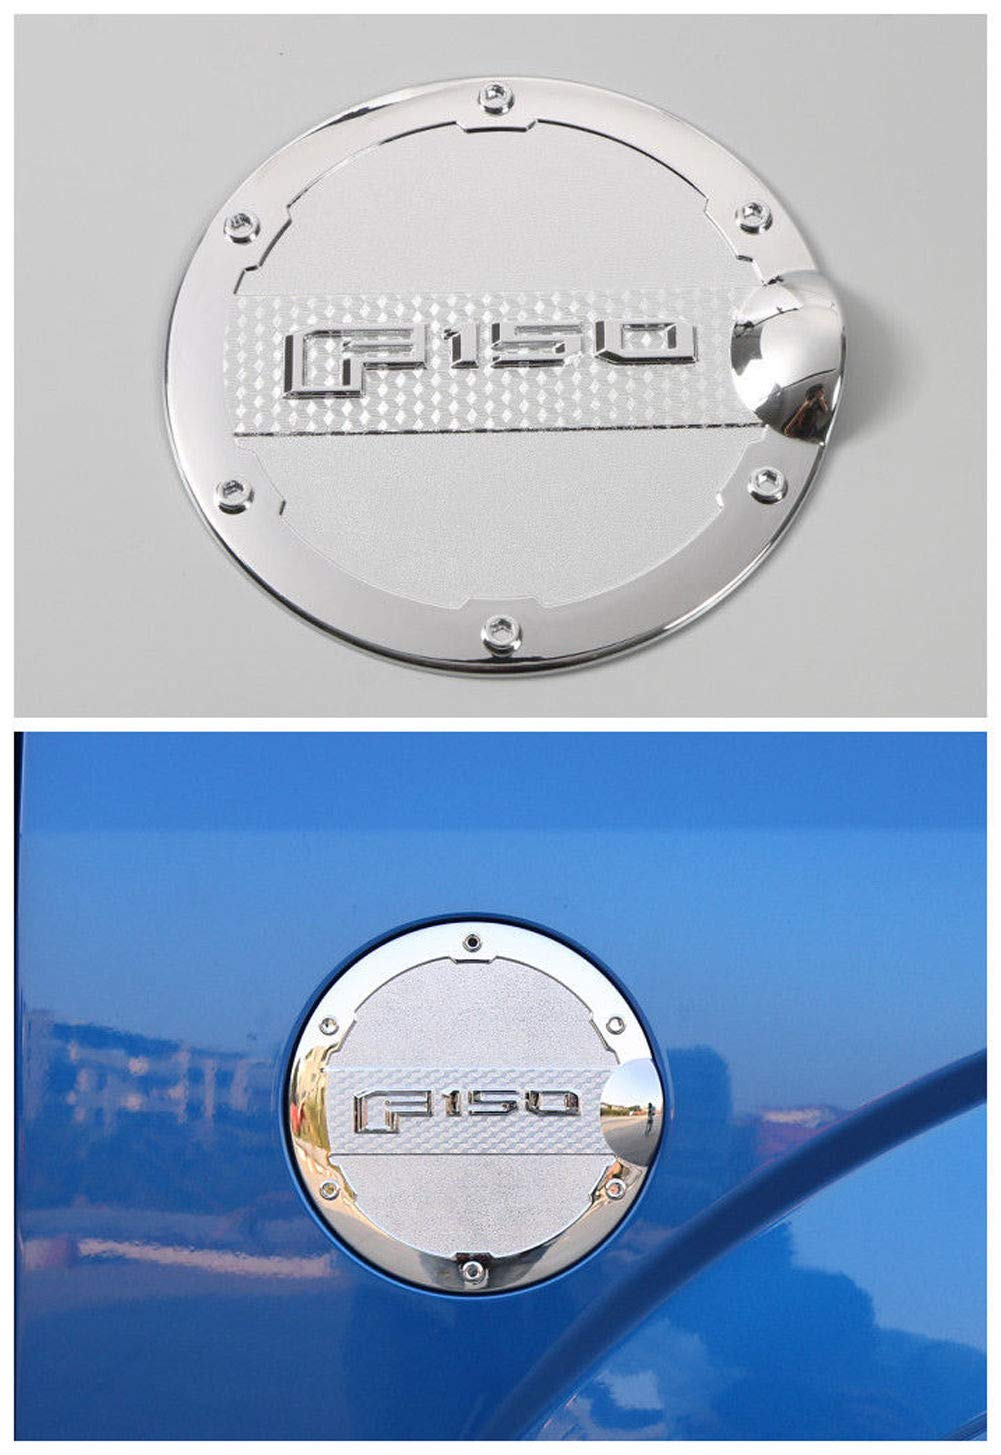 Chrome Gas Door Cover Fuel Tank Oil Cap Trim For Ford F-150 F150 2015-2017